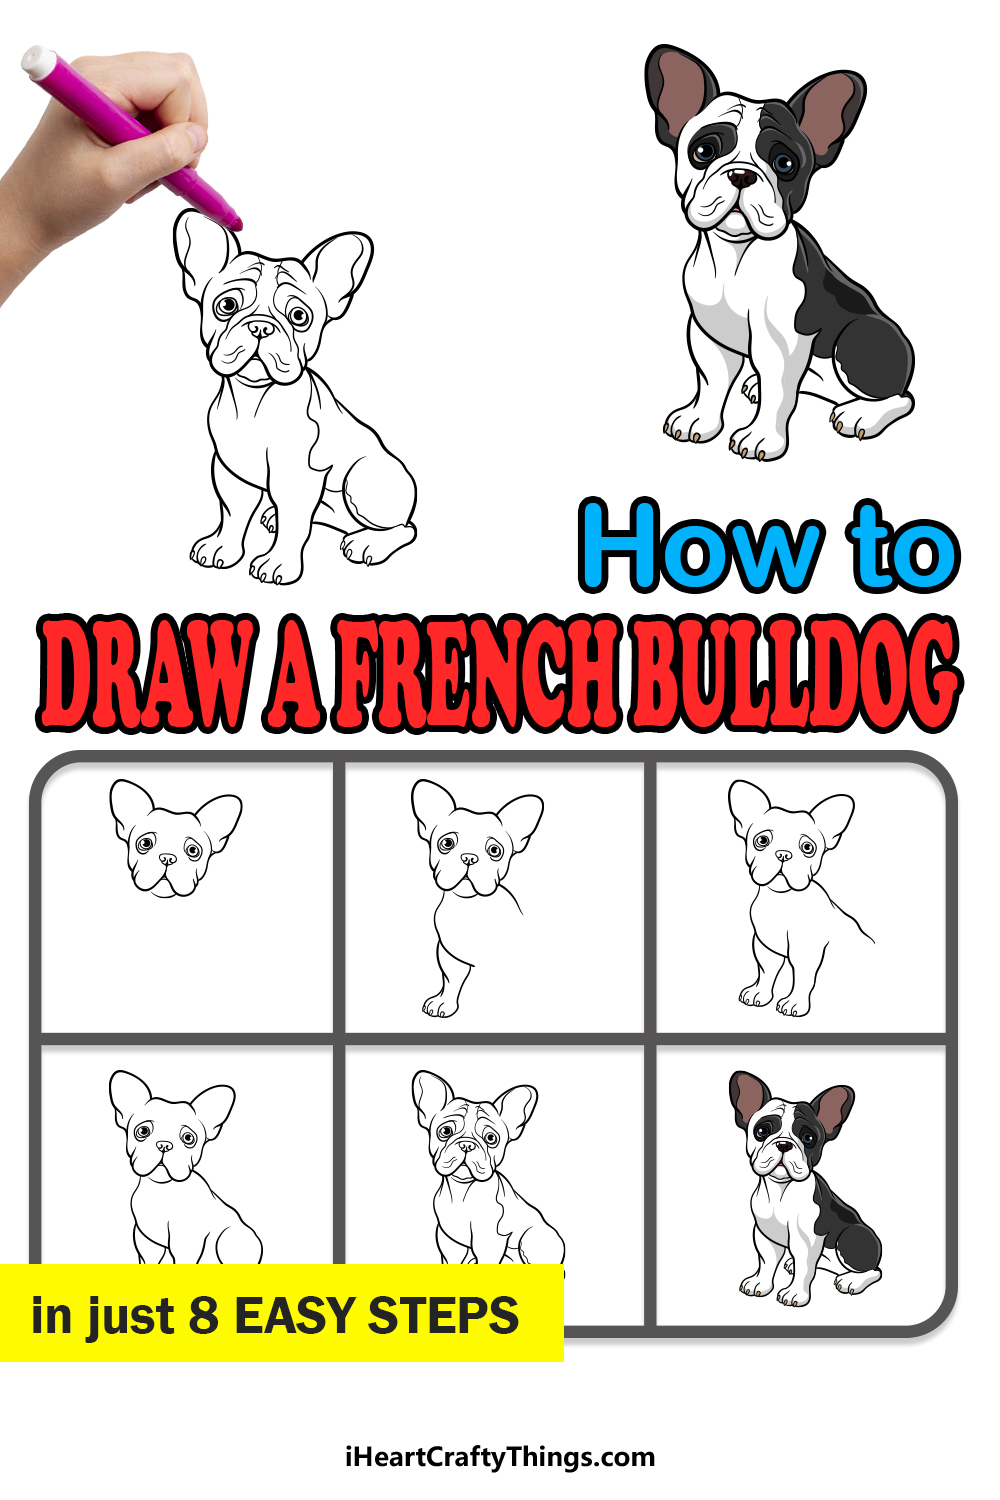 how to draw a french bulldog in 8 easy steps